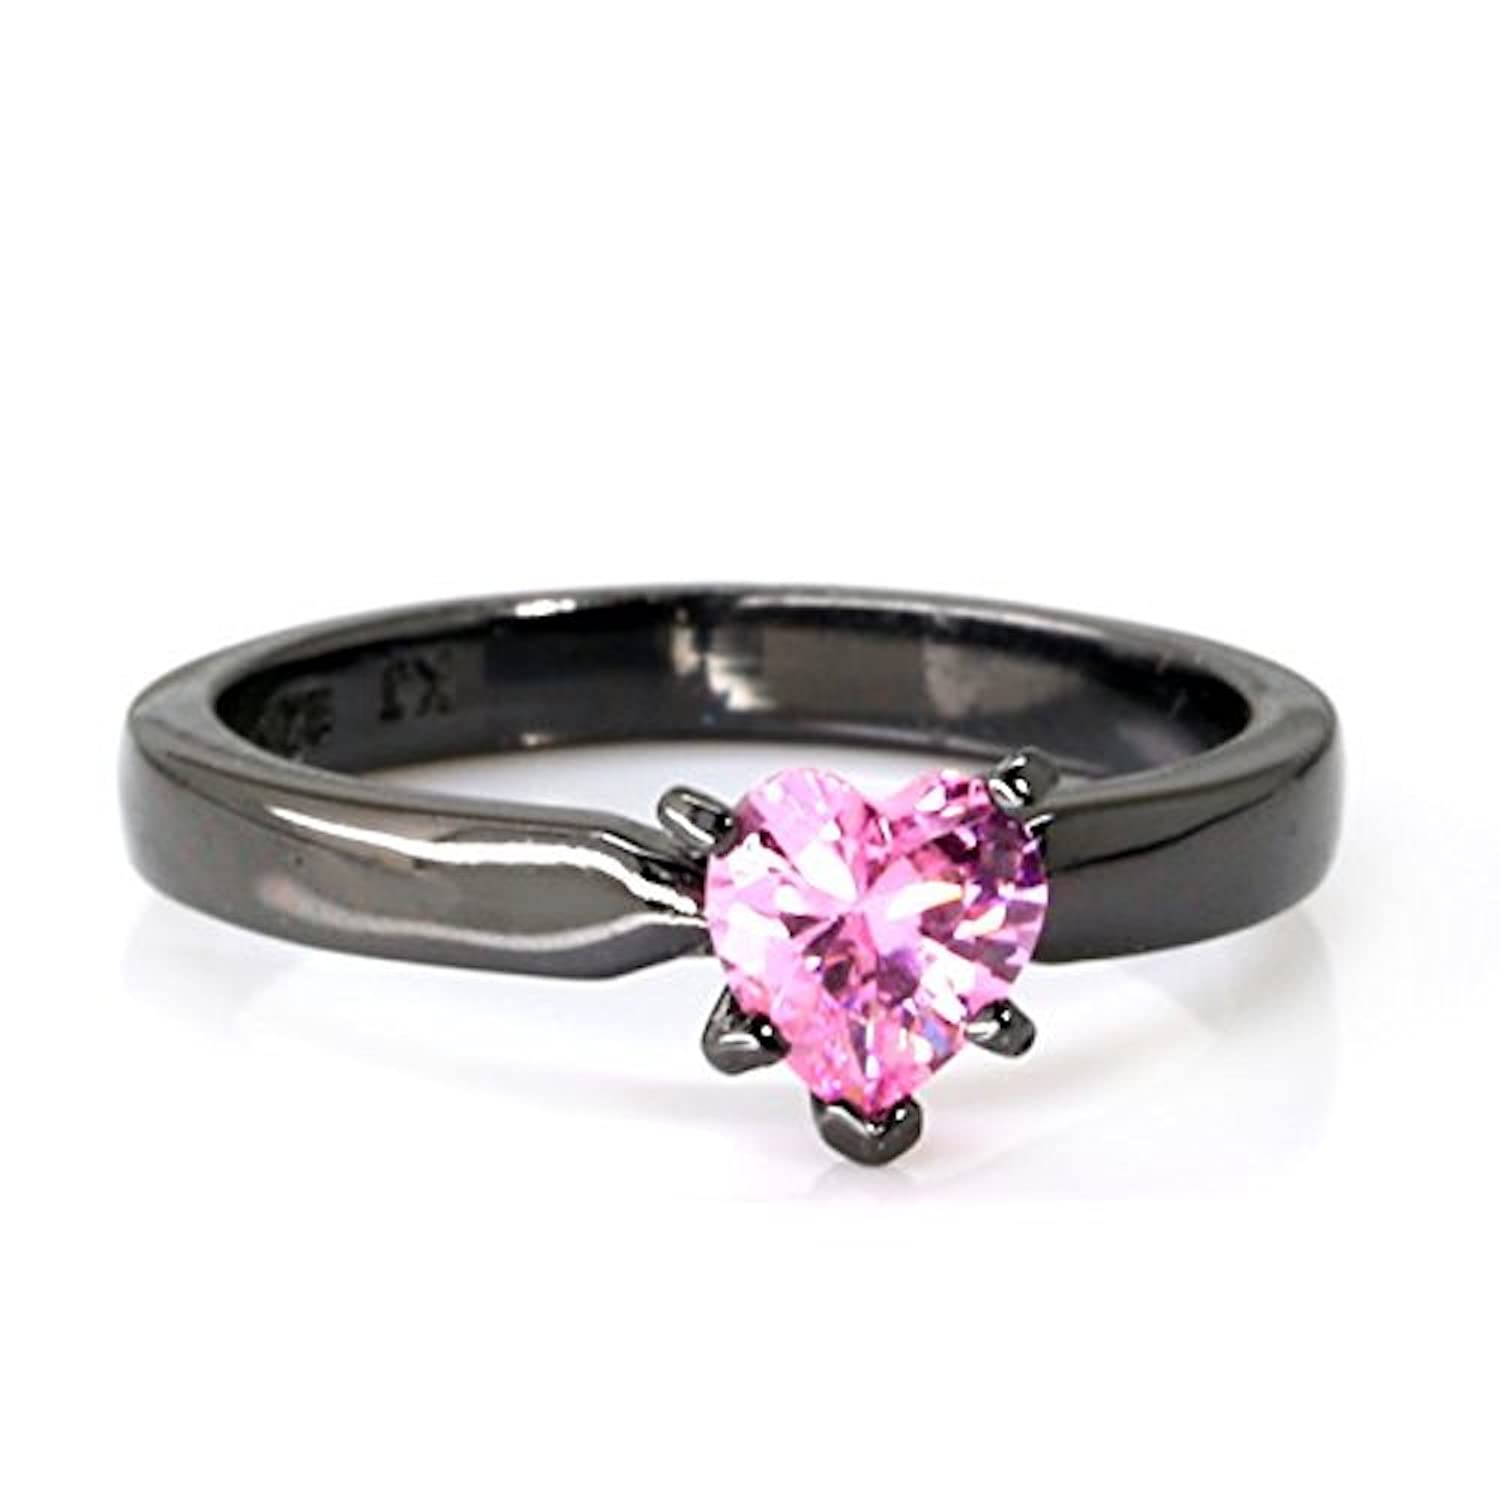 amazoncom black plated pink camo wedding ring set pink heart engagement rings hypoallergenic titanium and stainless steel jewelry - Pink Camo Wedding Rings For Her